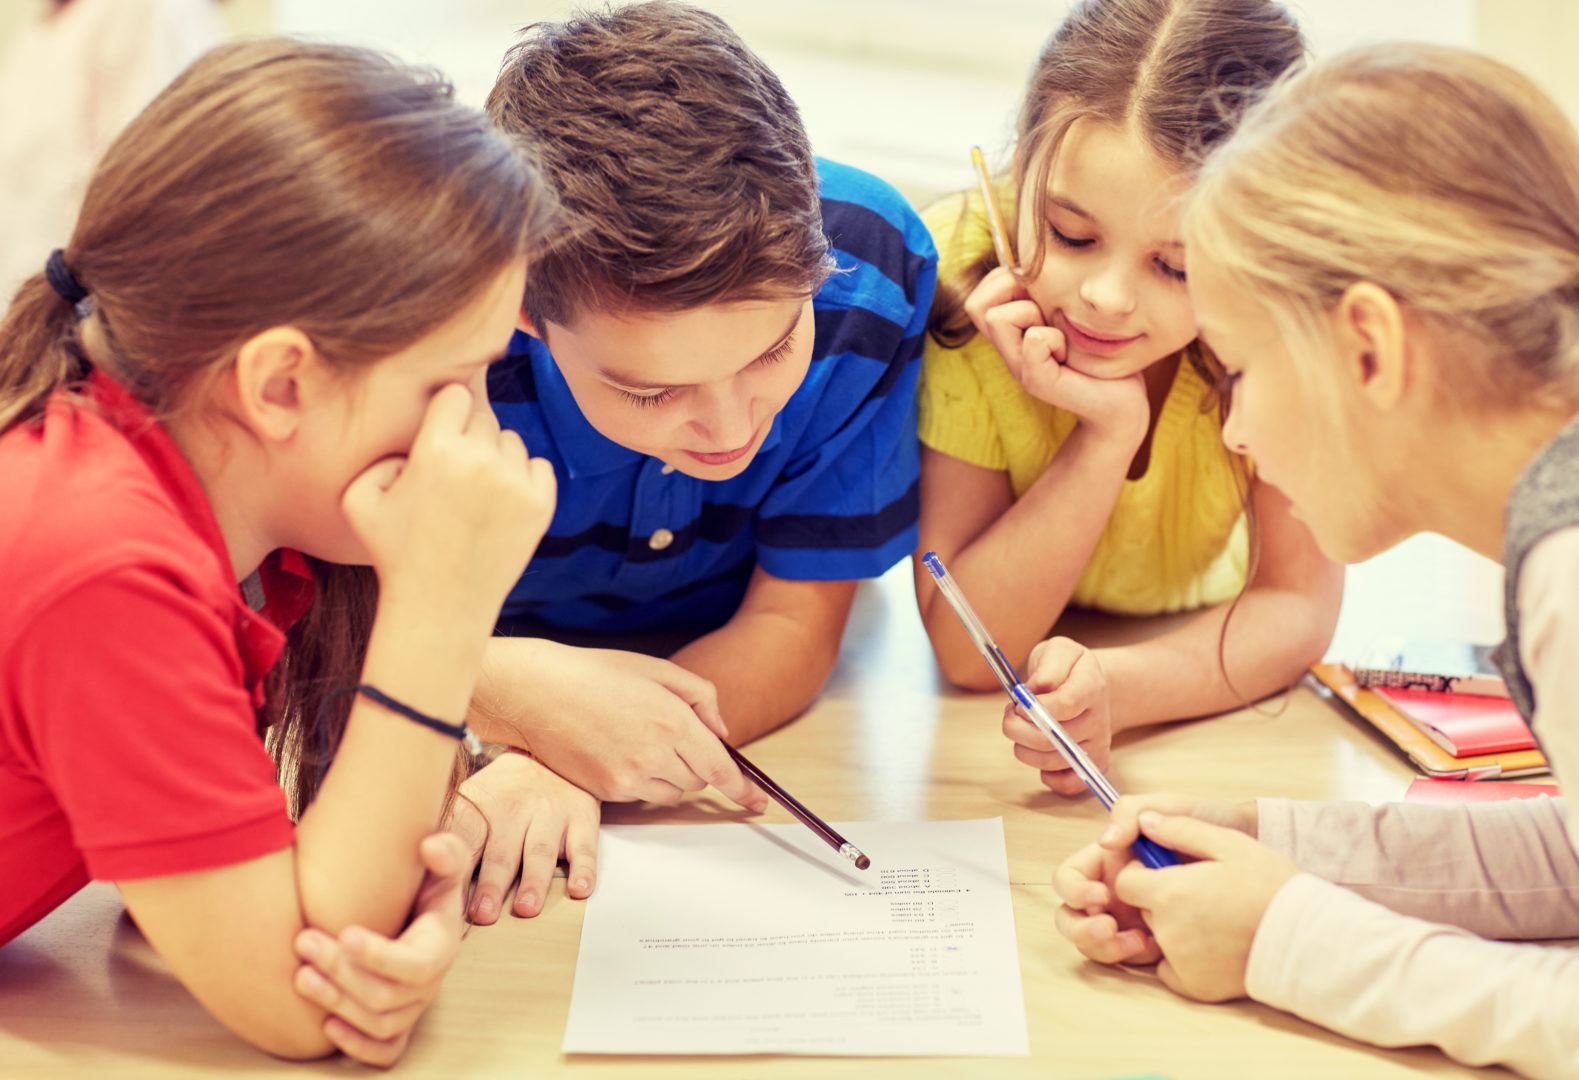 Group of kids filling out activity on paper at table